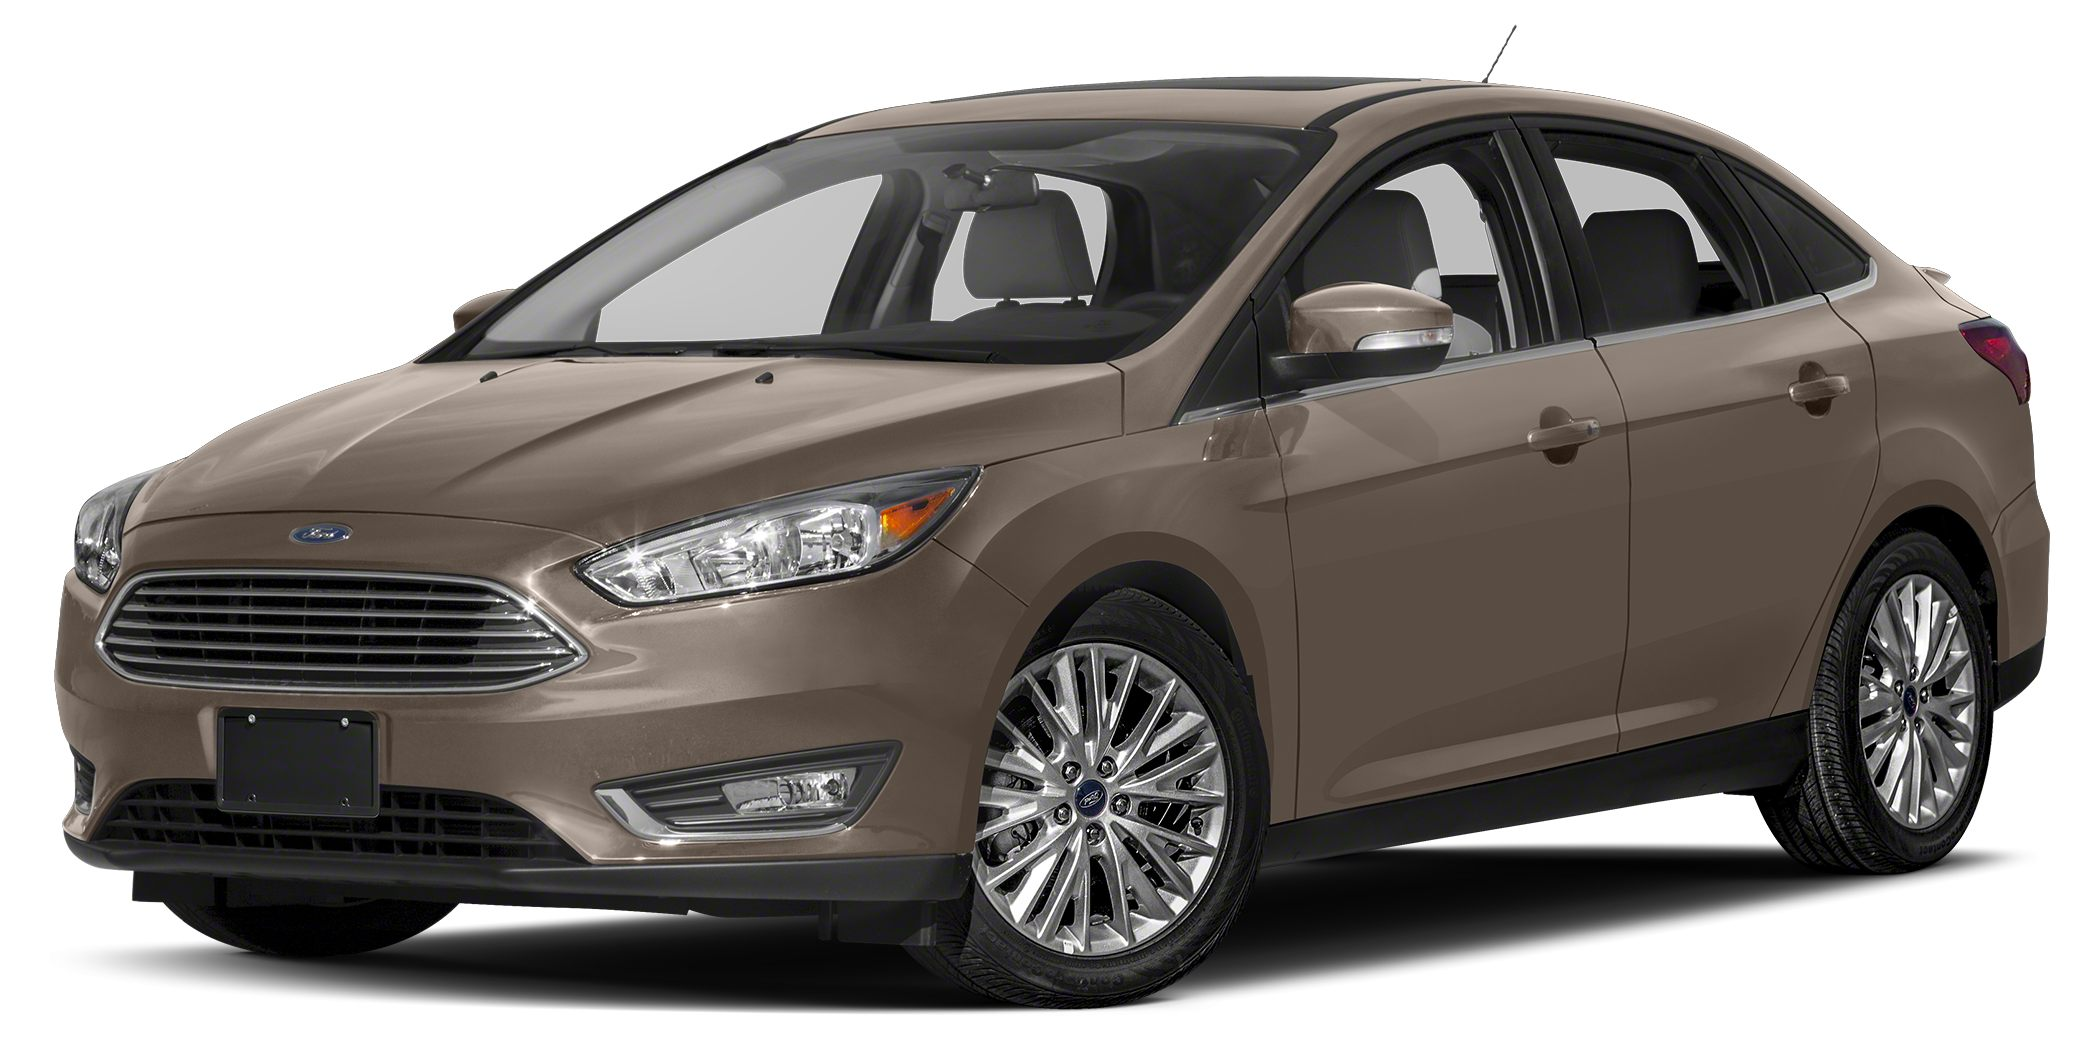 2016 Ford Focus Titanium CLEAN CARFAX NO ACCIDENTS REPORTED ONE OWNER SERVICE RECORDS AVAILABLE